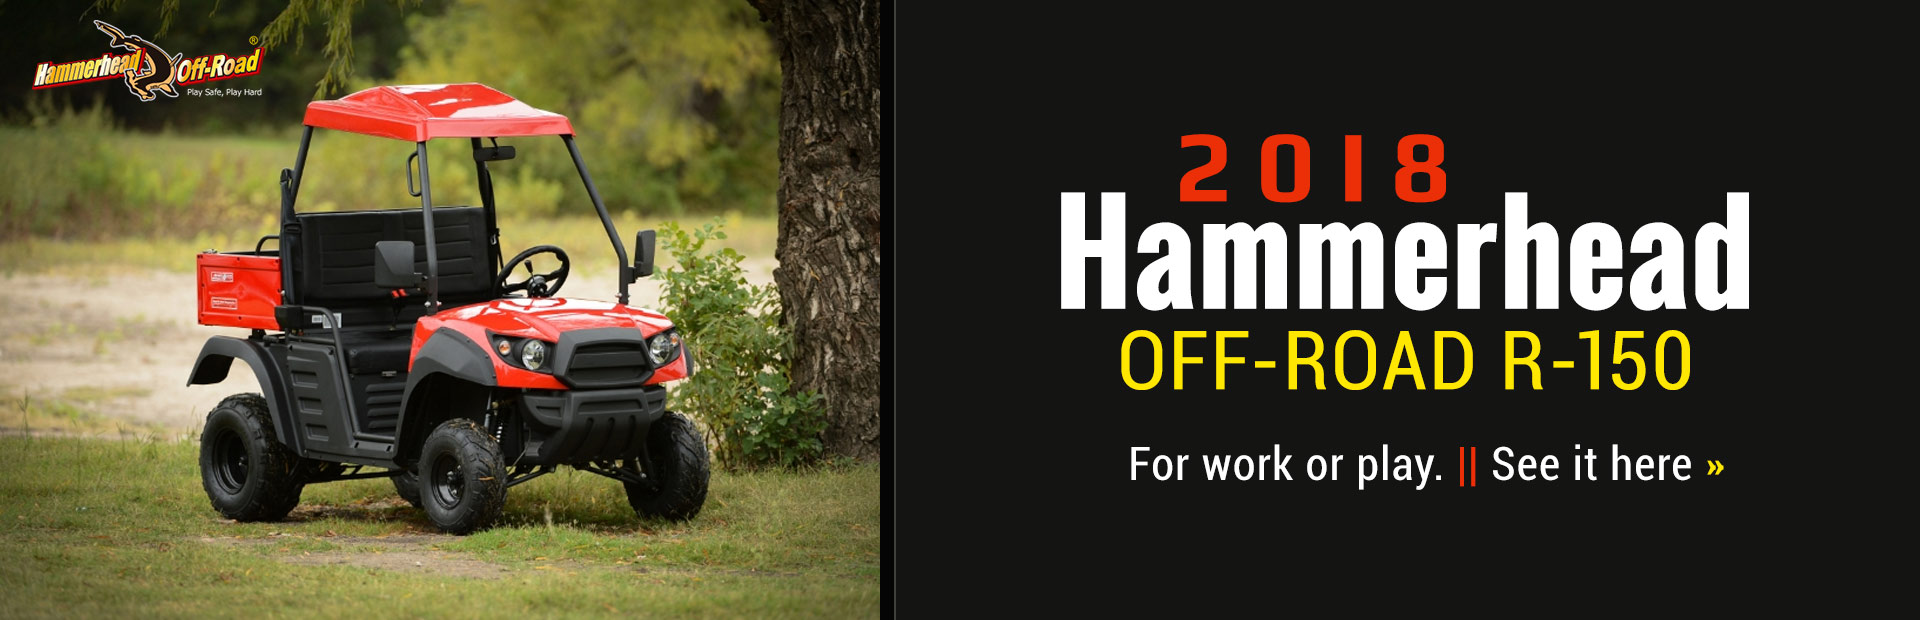 2018 Hammerhead Off-Road R-150: Click here to view the model.